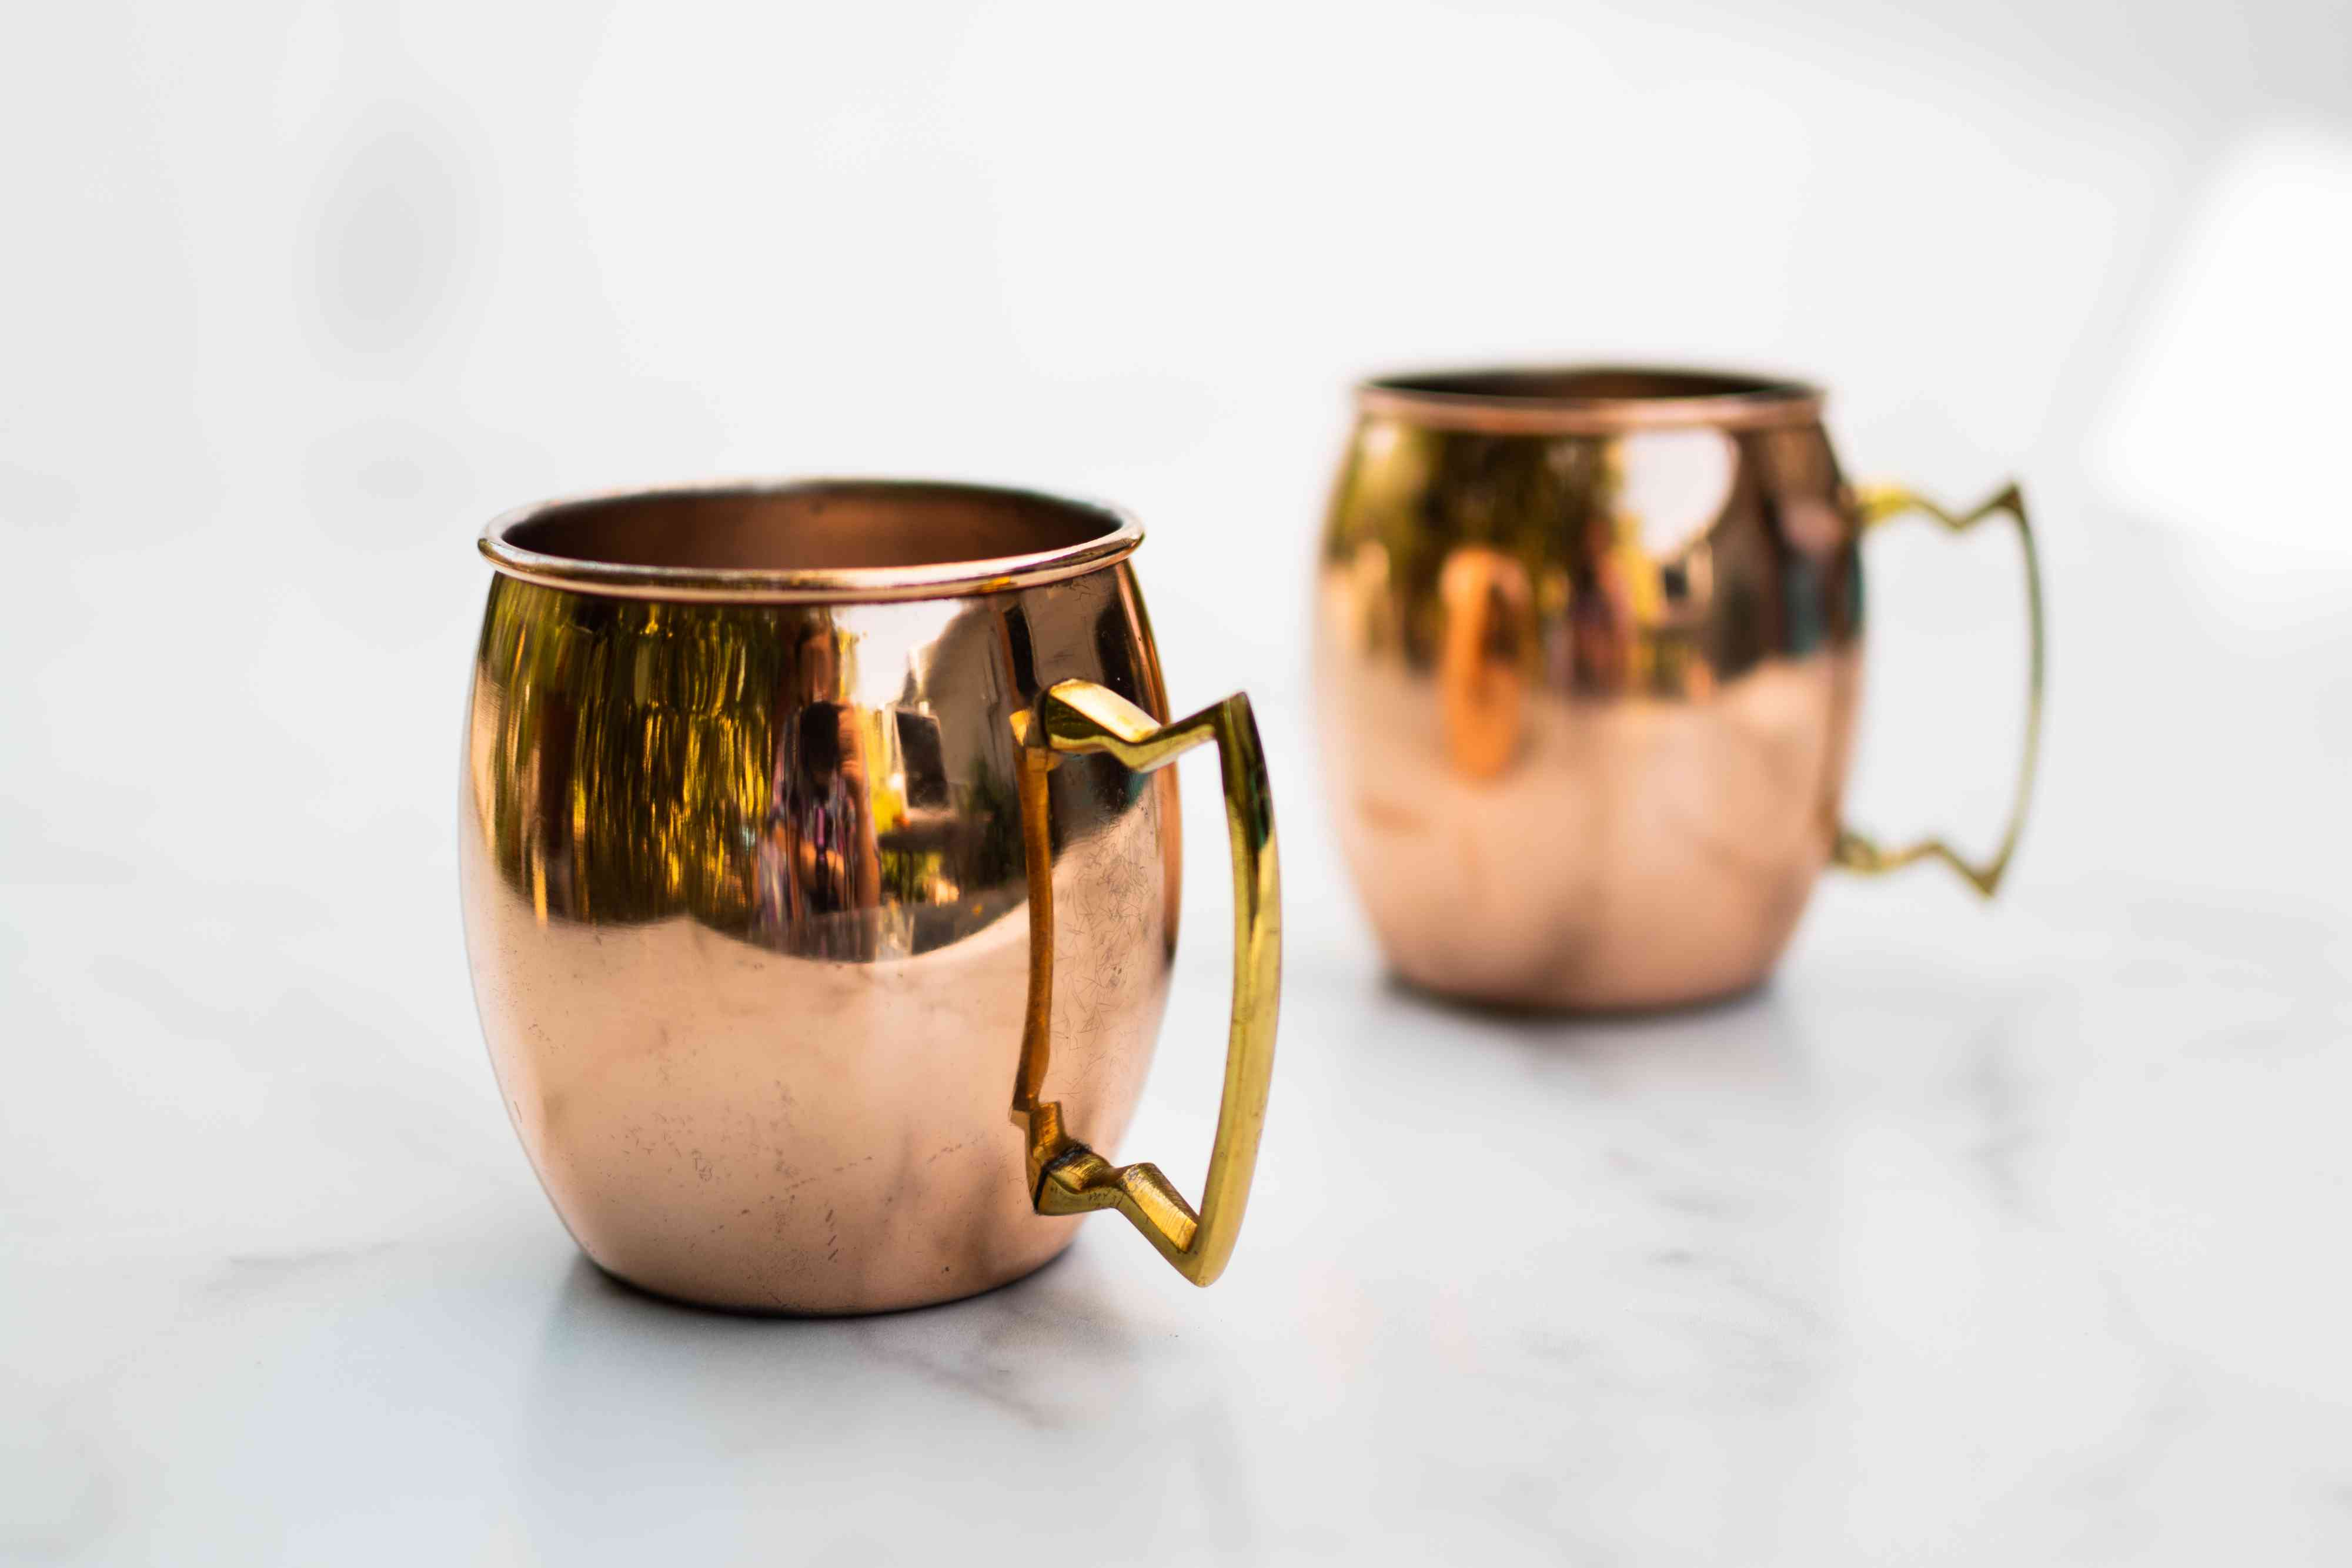 Pair of copper mugs not placed in dishwasher